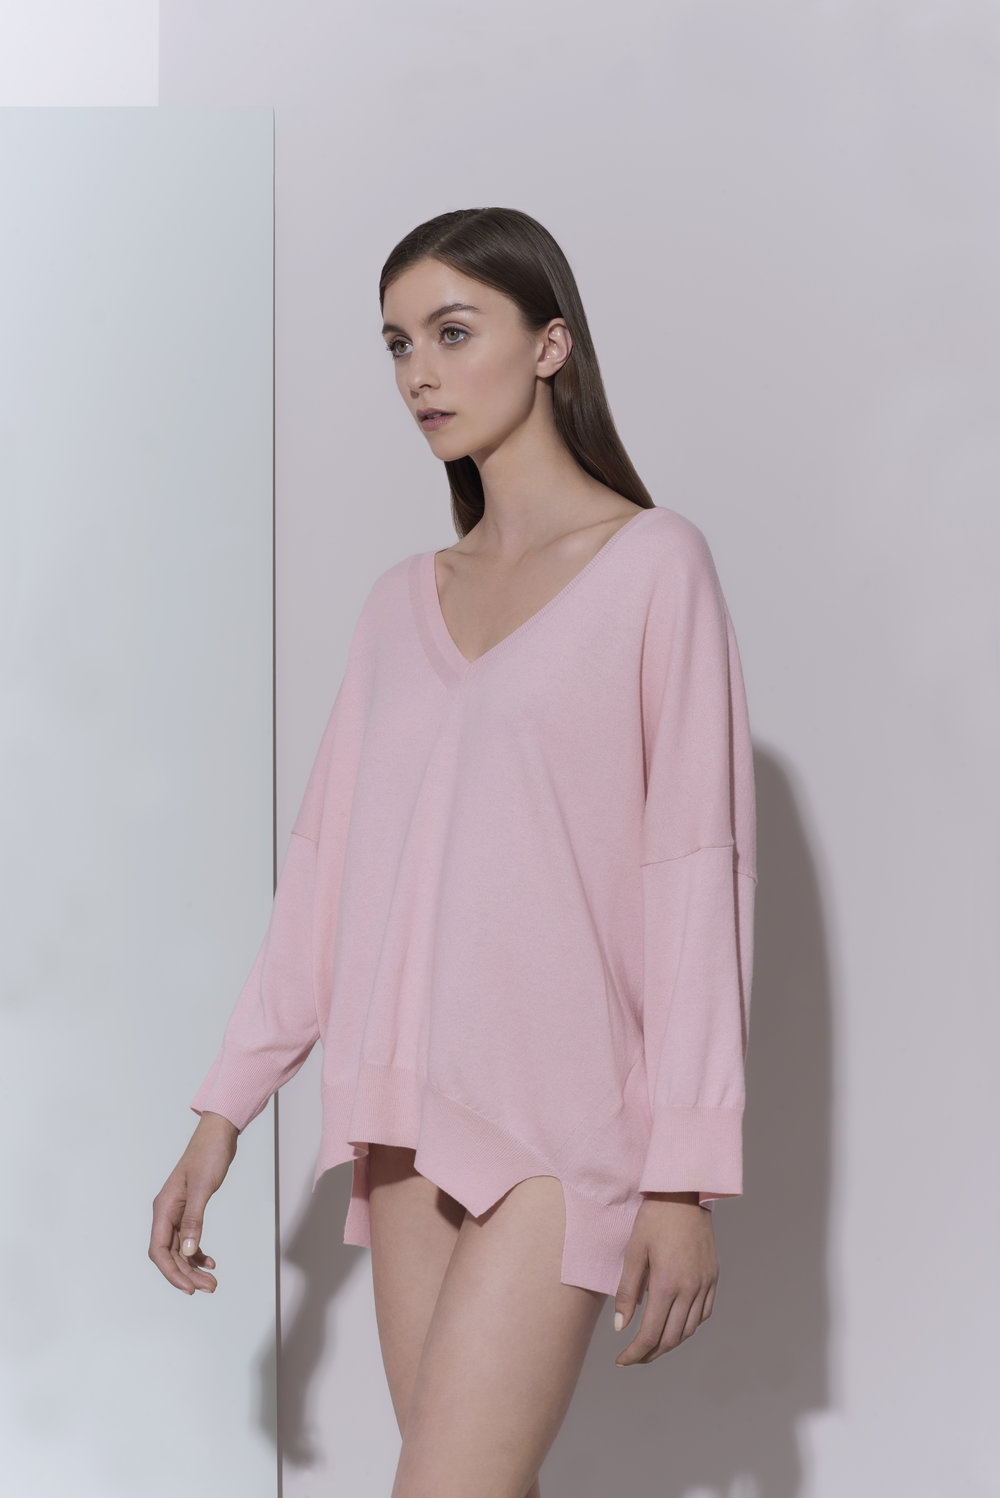 in.no knit Edition 1.0 - pink v neck jumper